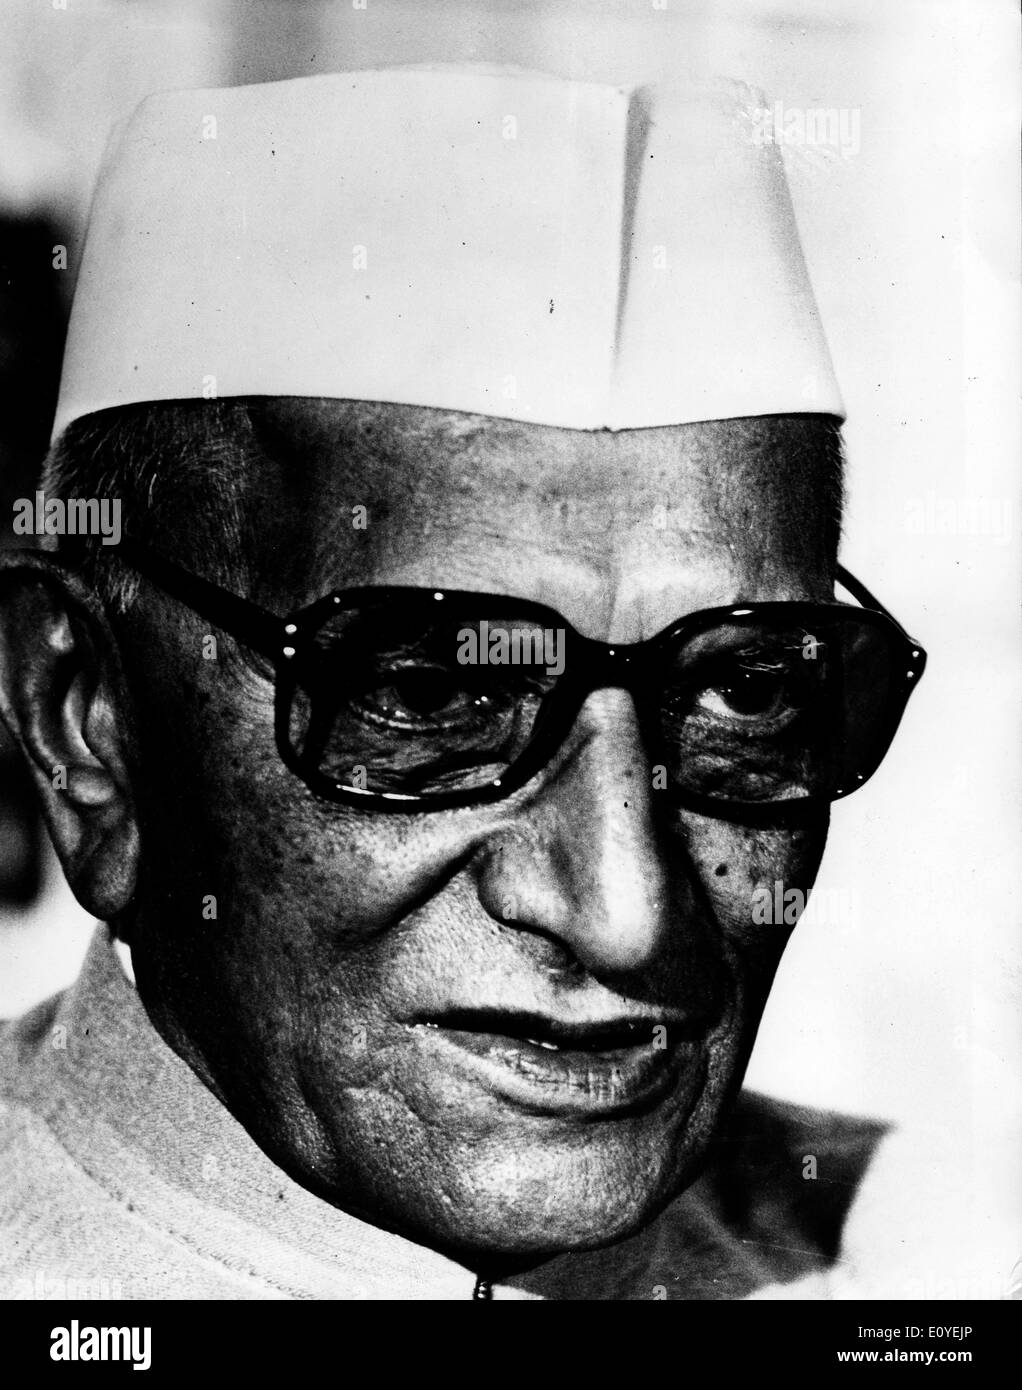 Jan. 01, 1970 - File Photo: circa 1970s, location unknown. MORARJI RANCHHODJI DESAI (29 February 1896 Ð 10 April 1995) was an Indian independence activist and the Prime Minister of India from 1977-79. He was the first Indian Prime Minister who did not belong to the Indian National Congress. He is the only Indian to receive the highest civilian awards from both India and Pakistan, the Bharat Ratna and Nishaan-e-Pakistan. - Stock Image